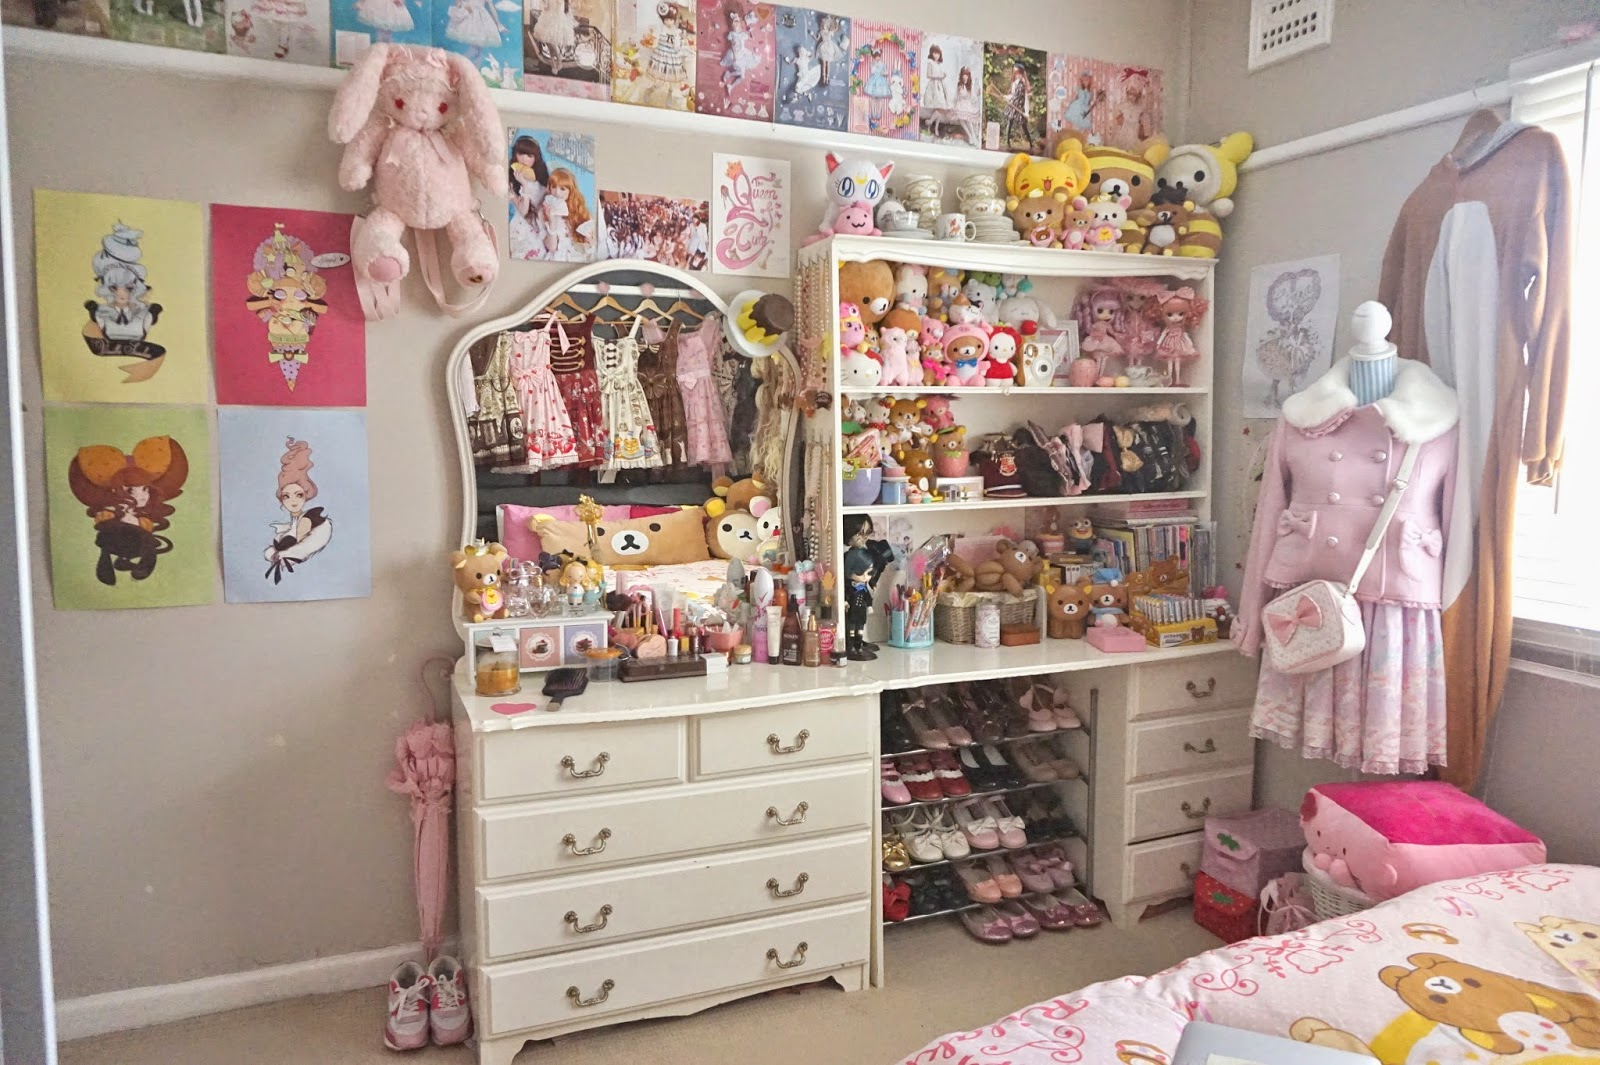 milkyfawn a lolita blog welcome to my bedroom welcome to my bedroom roblox